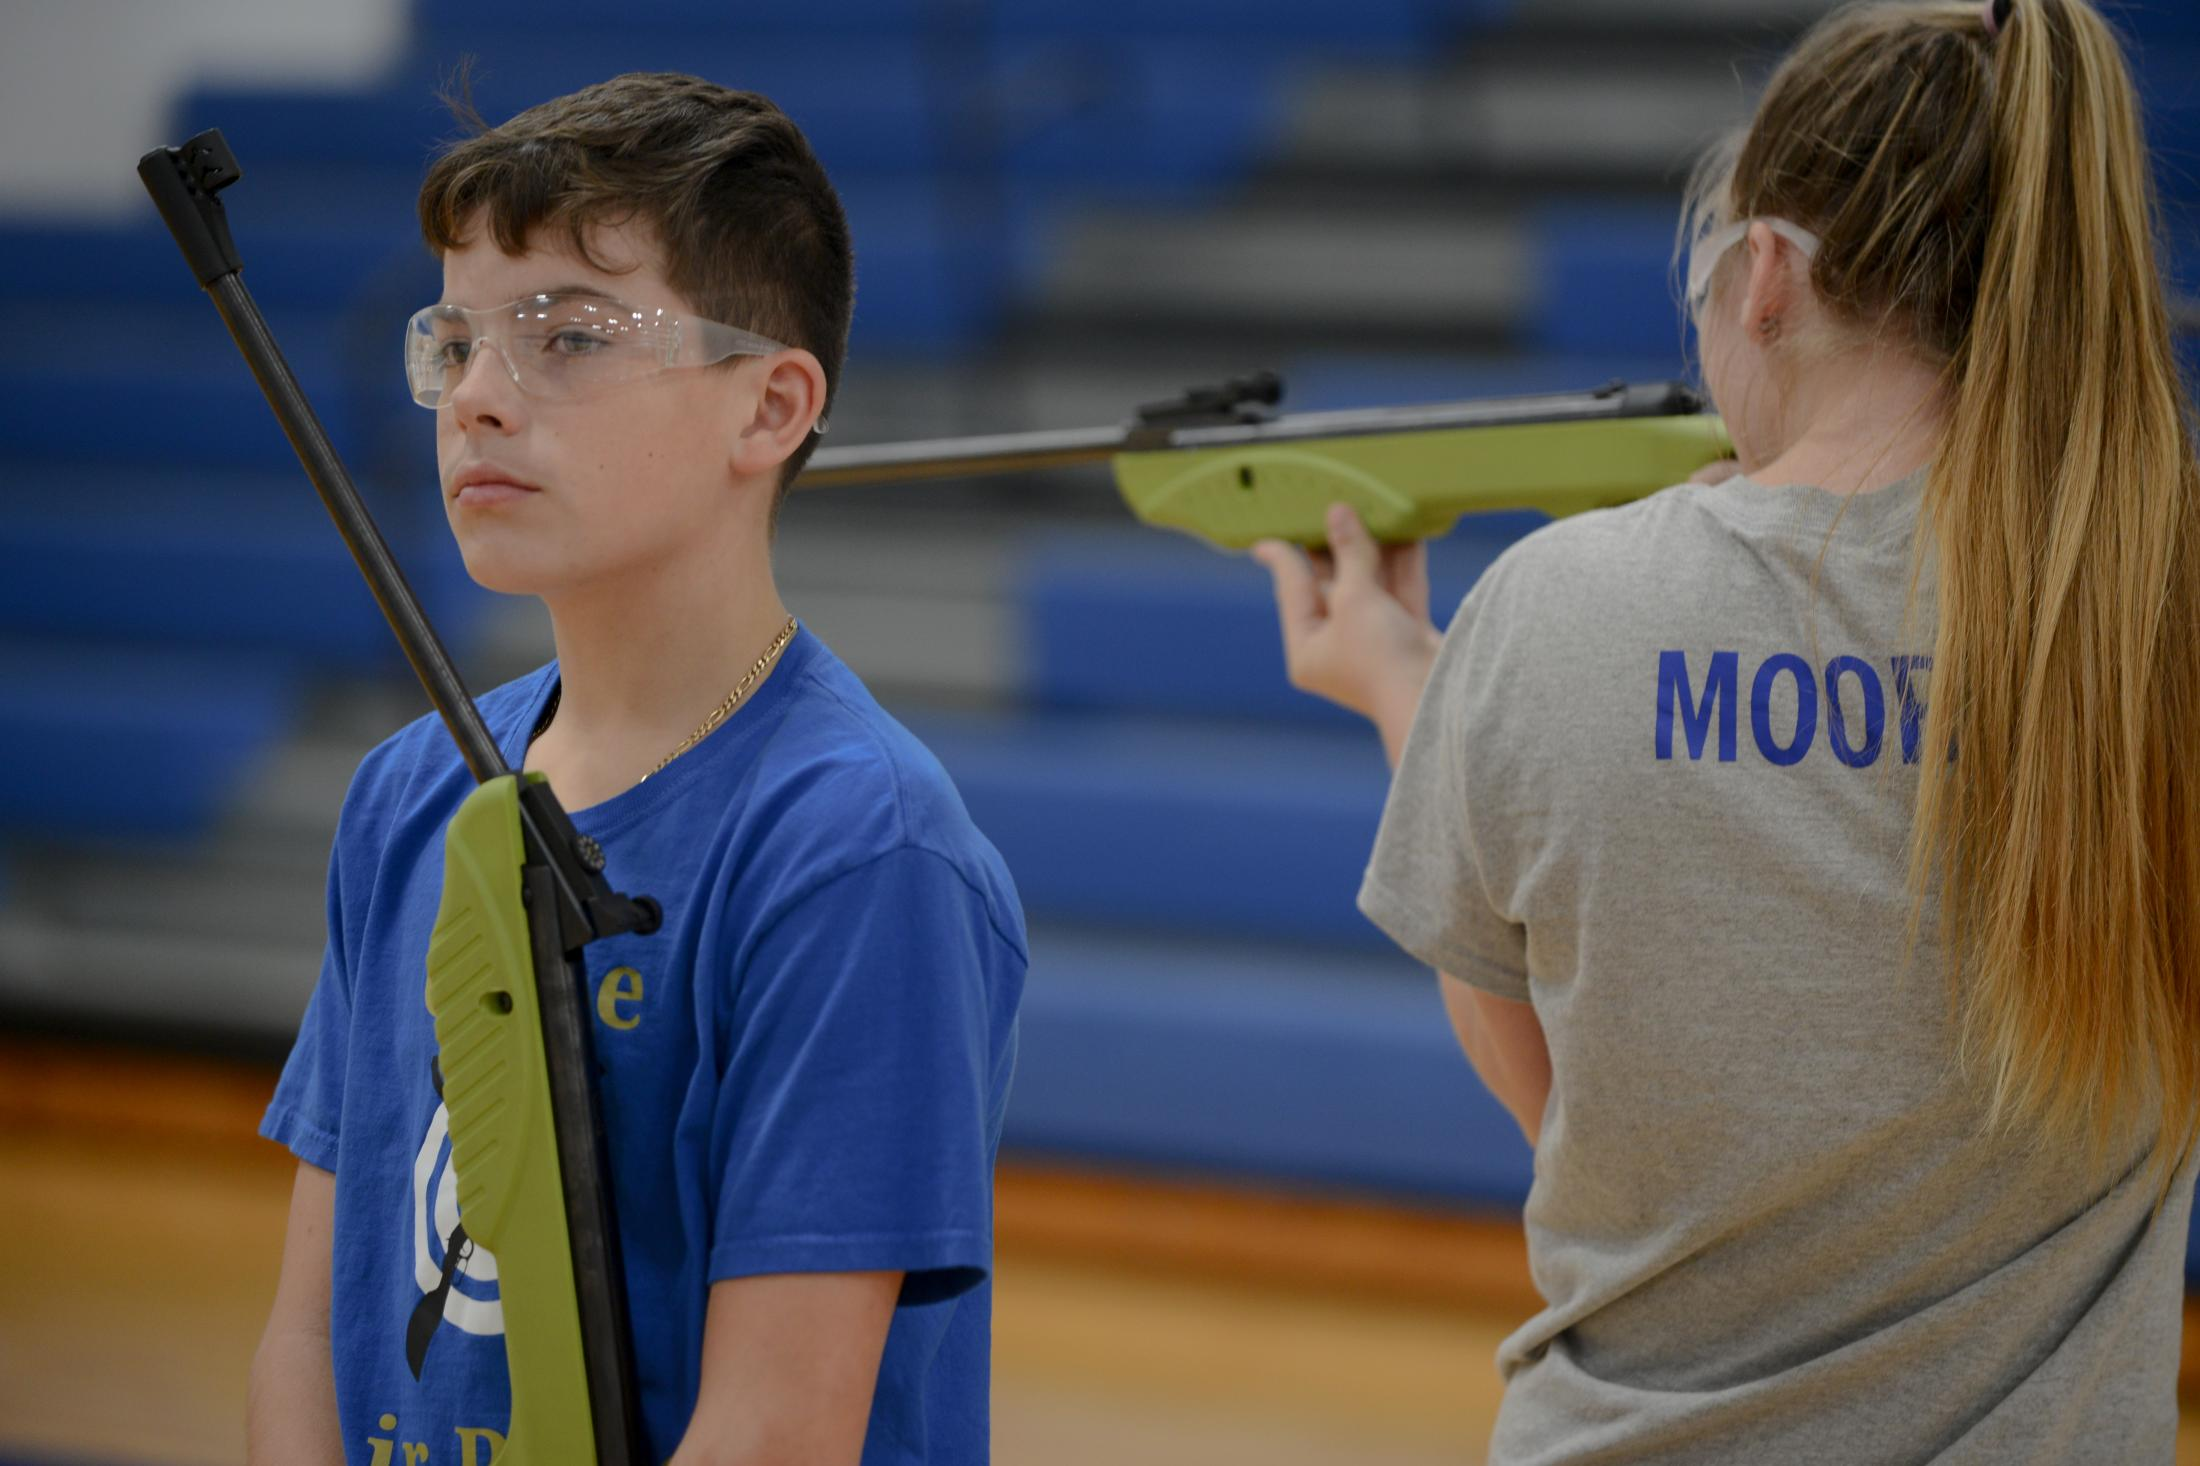 Caden Faucett, 13, from Crane, Missouri stands with his air rifle open after completing a round of shooting at the Student Air Rifle Program tournament at Clever High School on November 14, 2019. NRA money to Missouri schools increased from $29,100 in 2010 to nearly $158,000 in 2017.